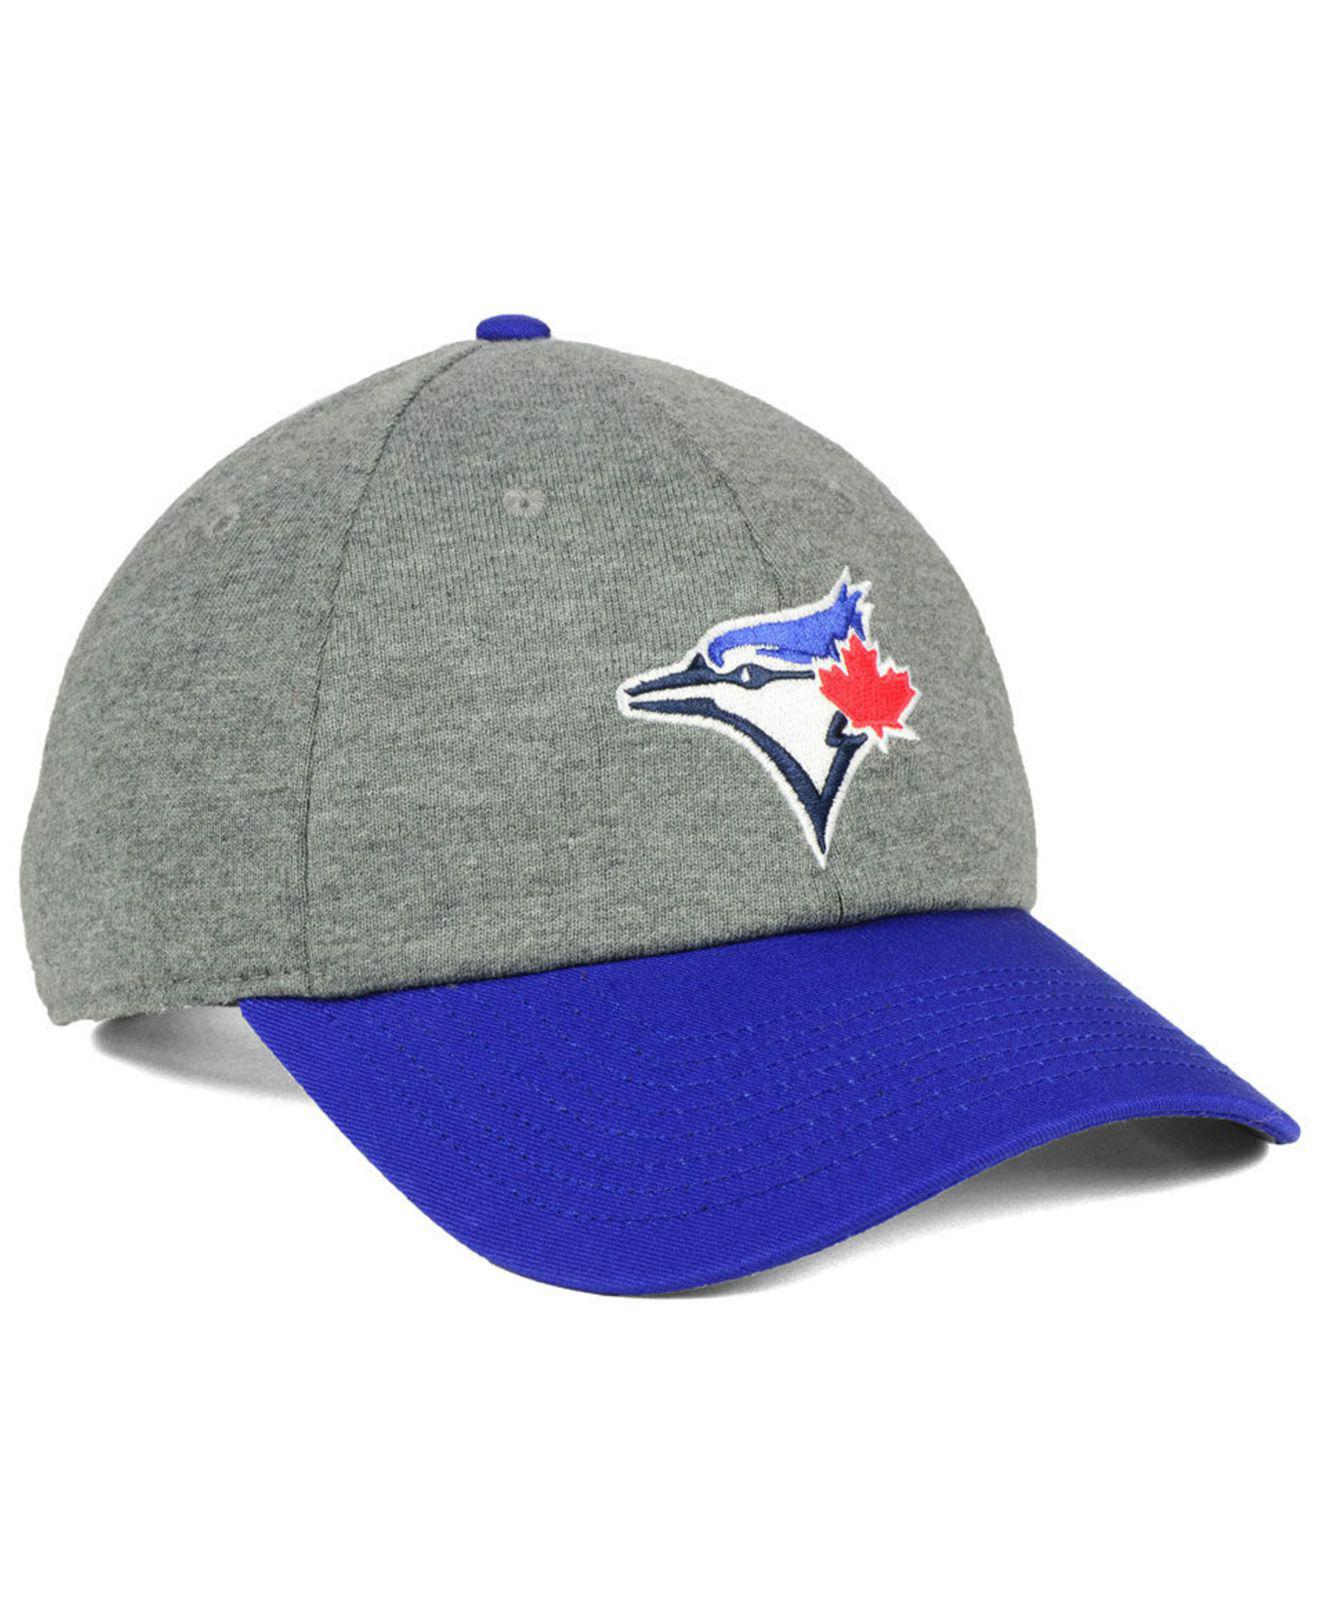 pretty nice 4ffa7 4dca7 ... authentic nike multicolor toronto blue jays 2 tone heather cap for men  lyst. view fullscreen